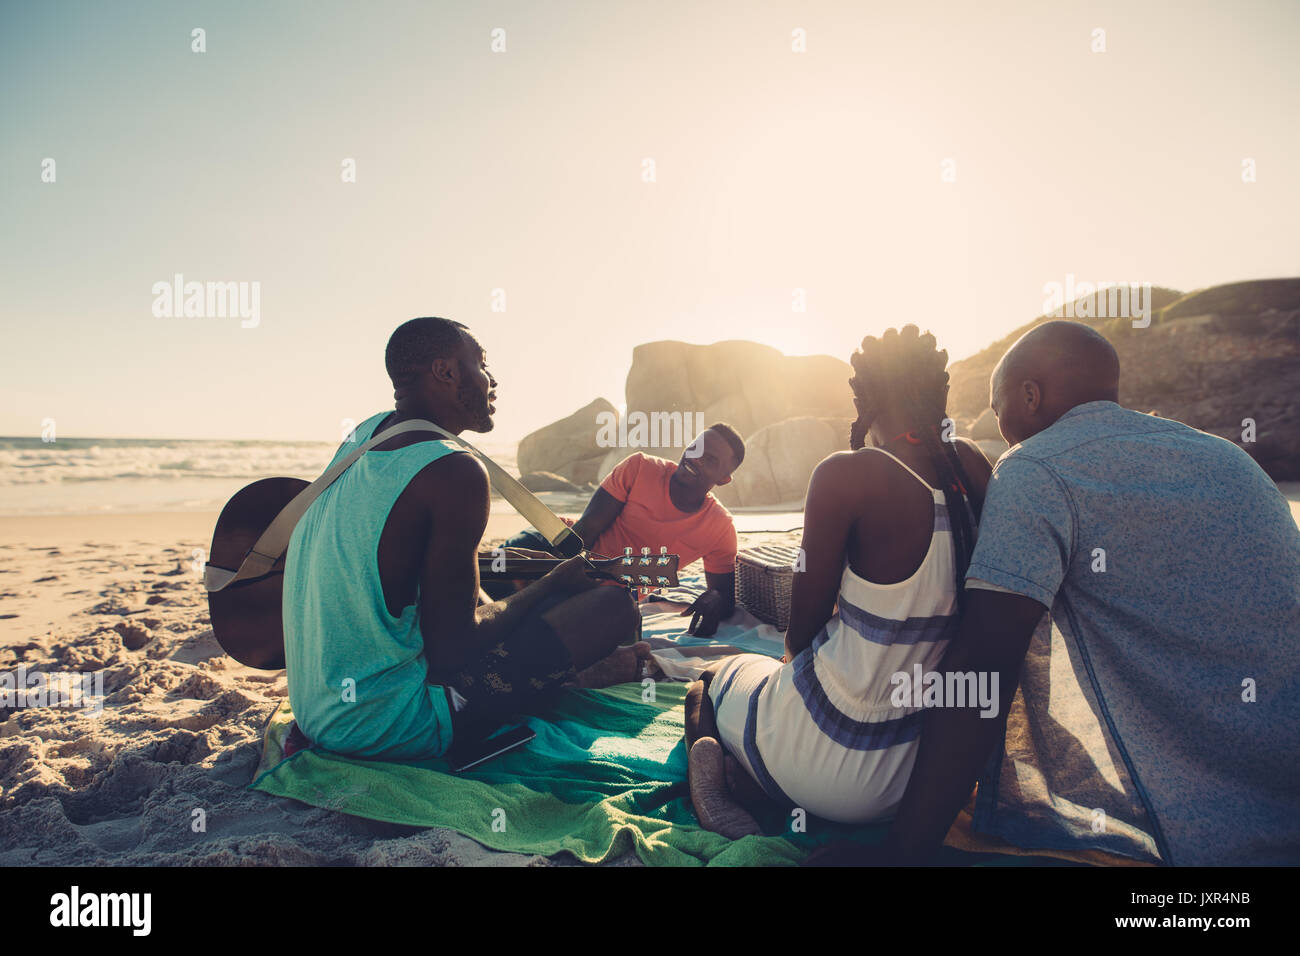 African young man singing and playing guitar on the beach. Group of four people having great time at the beach picnic. - Stock Image